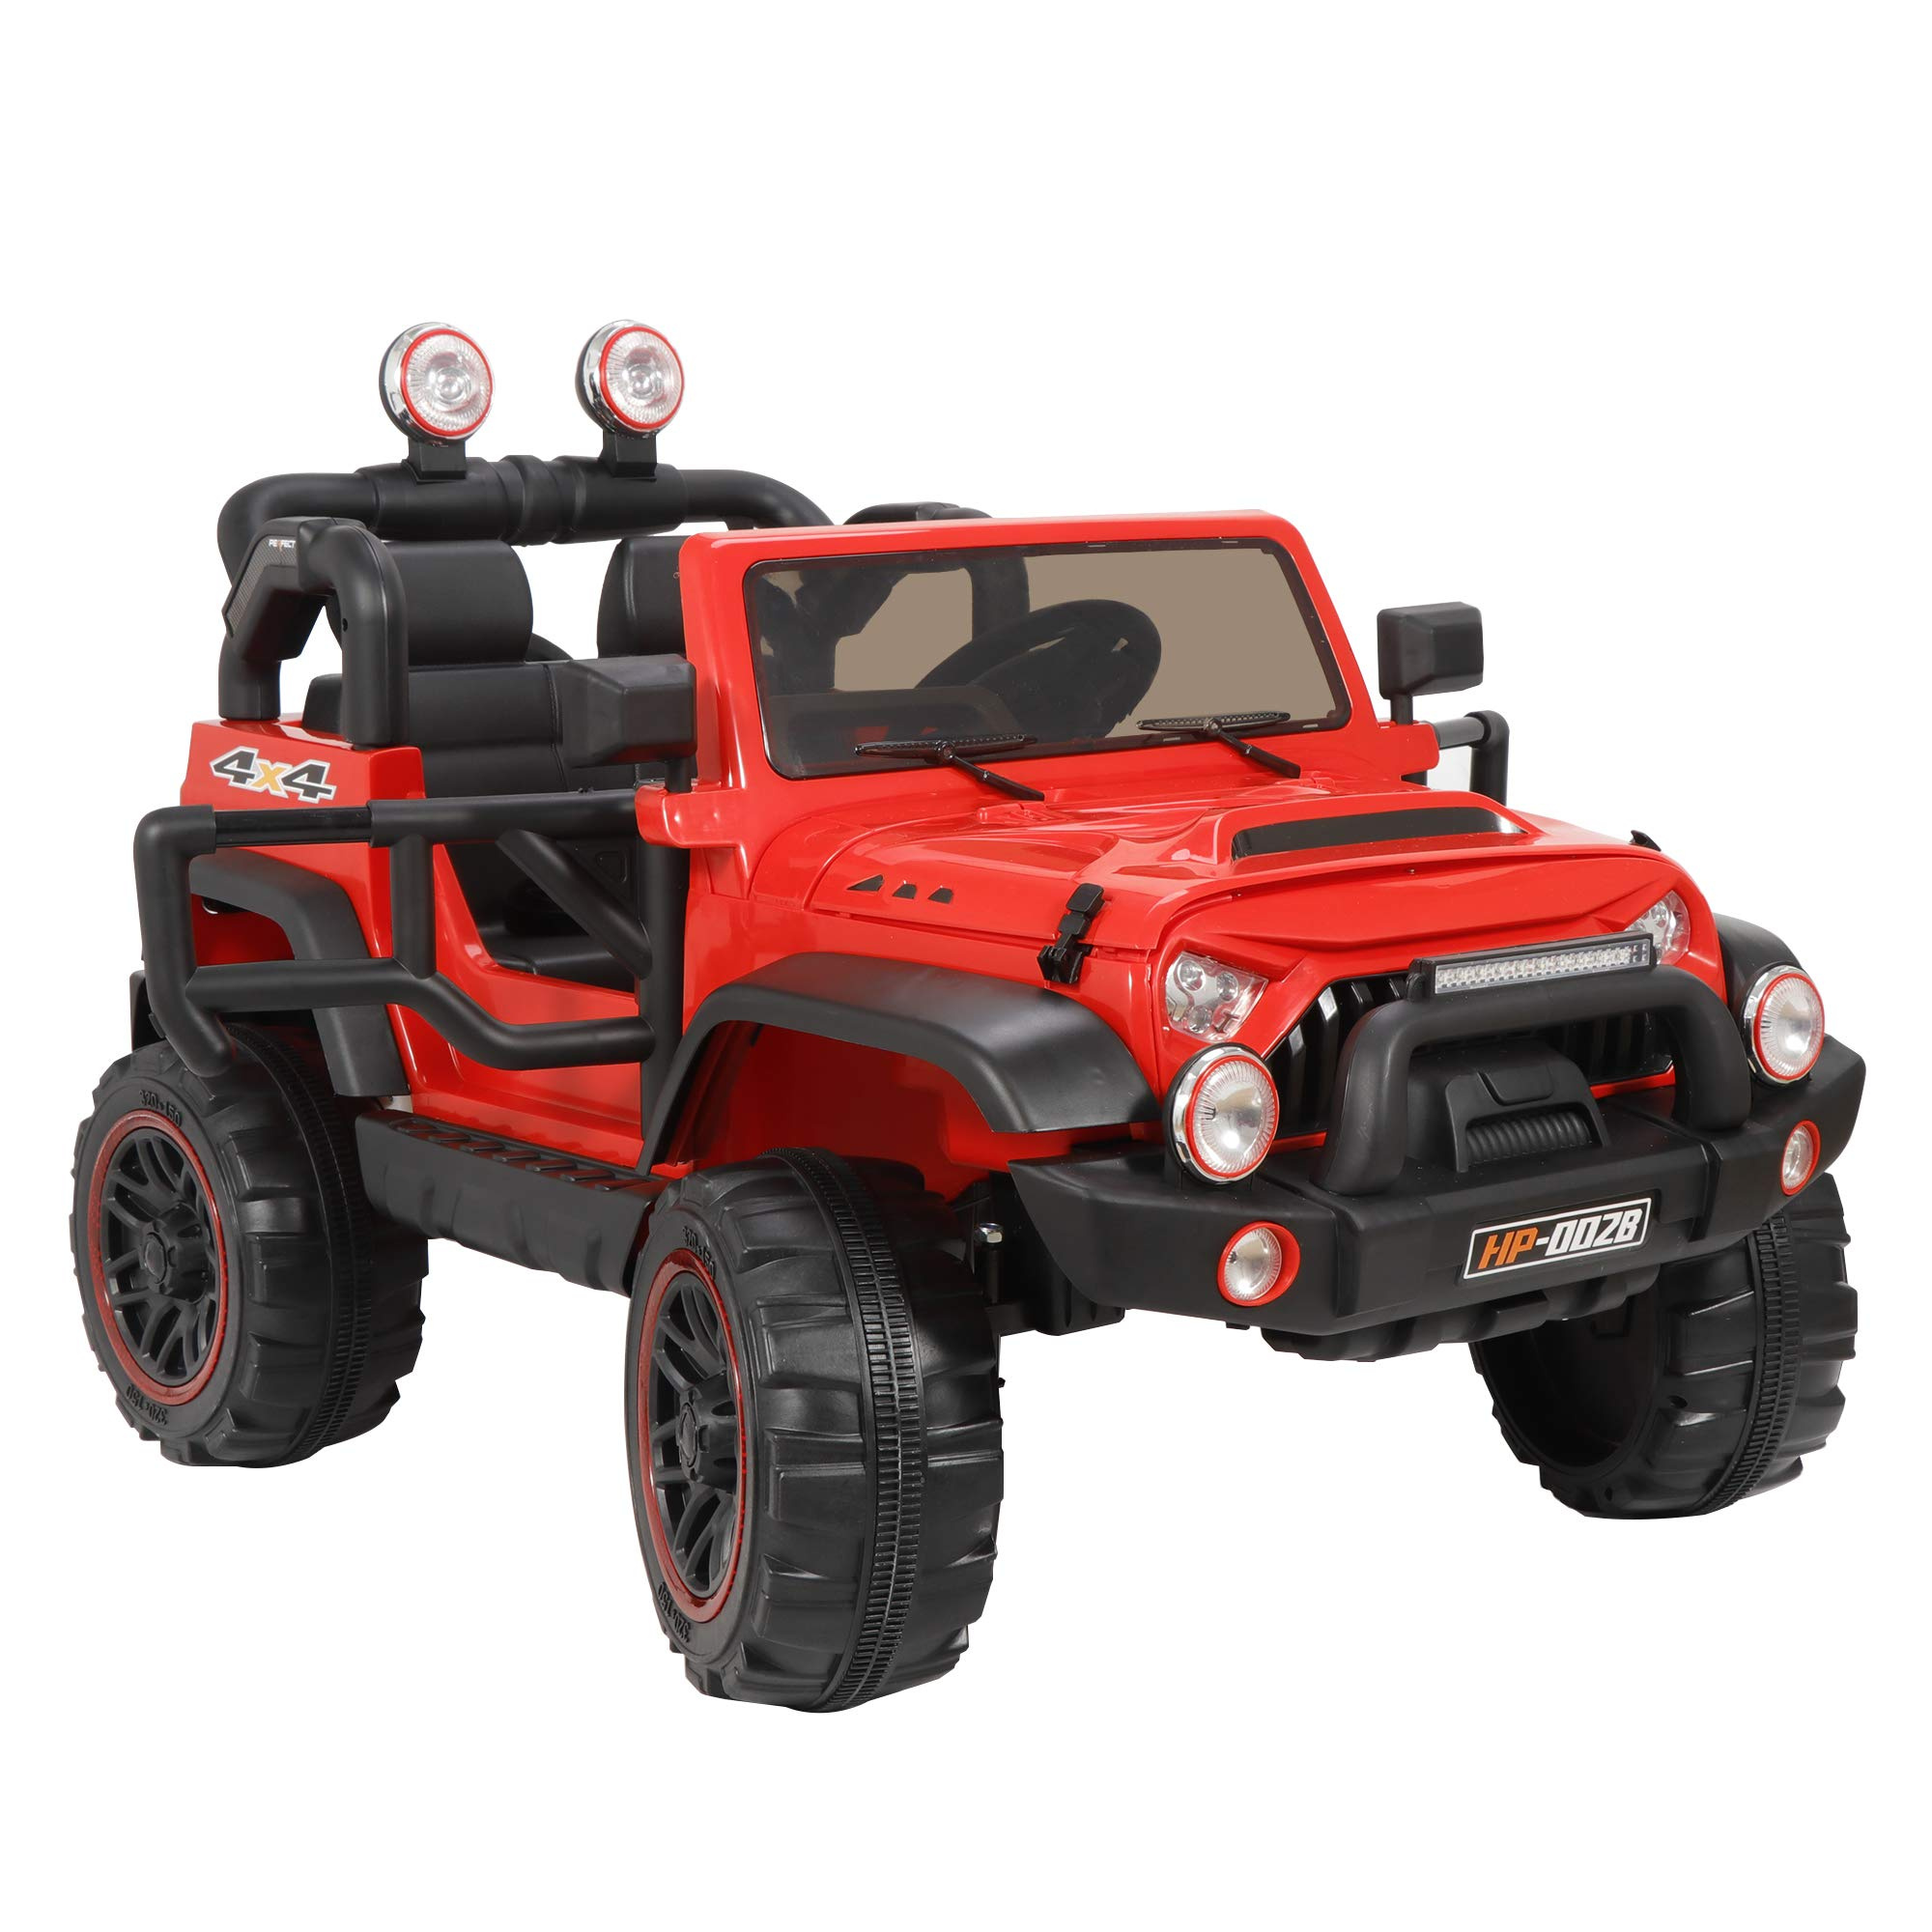 ZENY 12V Kids Ride On Car Truck Electric Ride On Vehicle Toy Children's Motorized Cars with Remote Control,3 Speeds,LED Lights,Double Doors,Story & Music,Spring Suspension (Red)